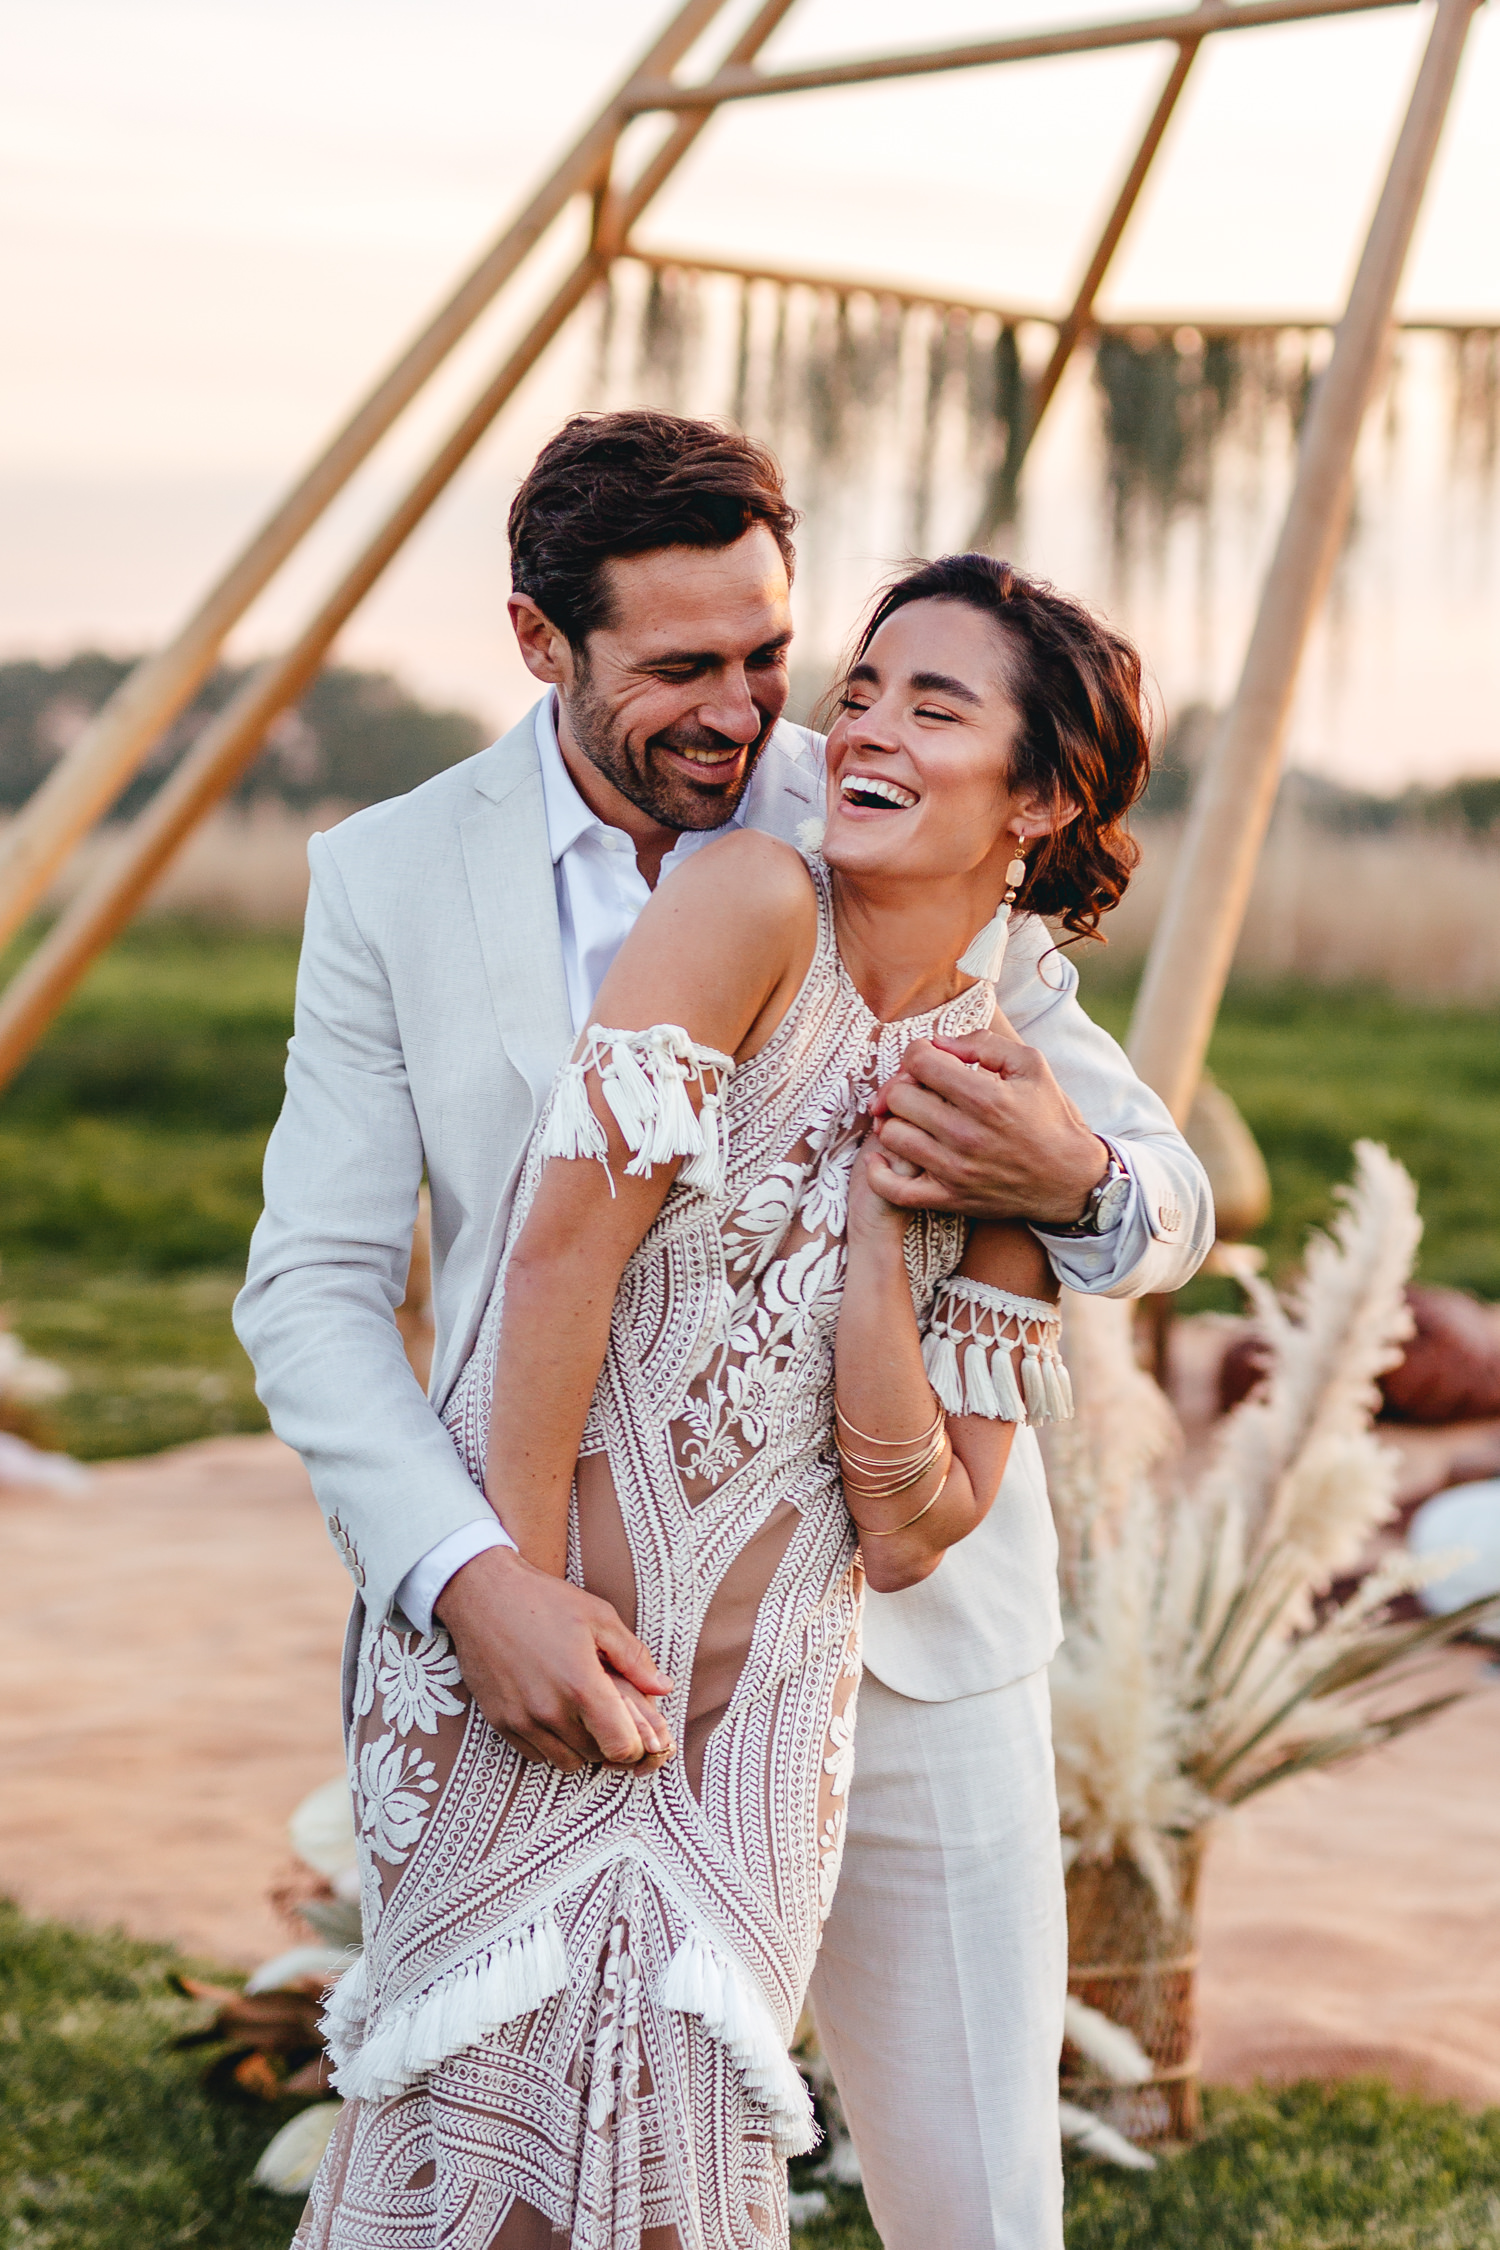 Relaxed boho wedding photography. Boho bride and bouquet of flowers with pampas grass. Bride wears Rue De Seine dress during Moroccan inspired festival wedding at Wilderness wedding venue in Kent